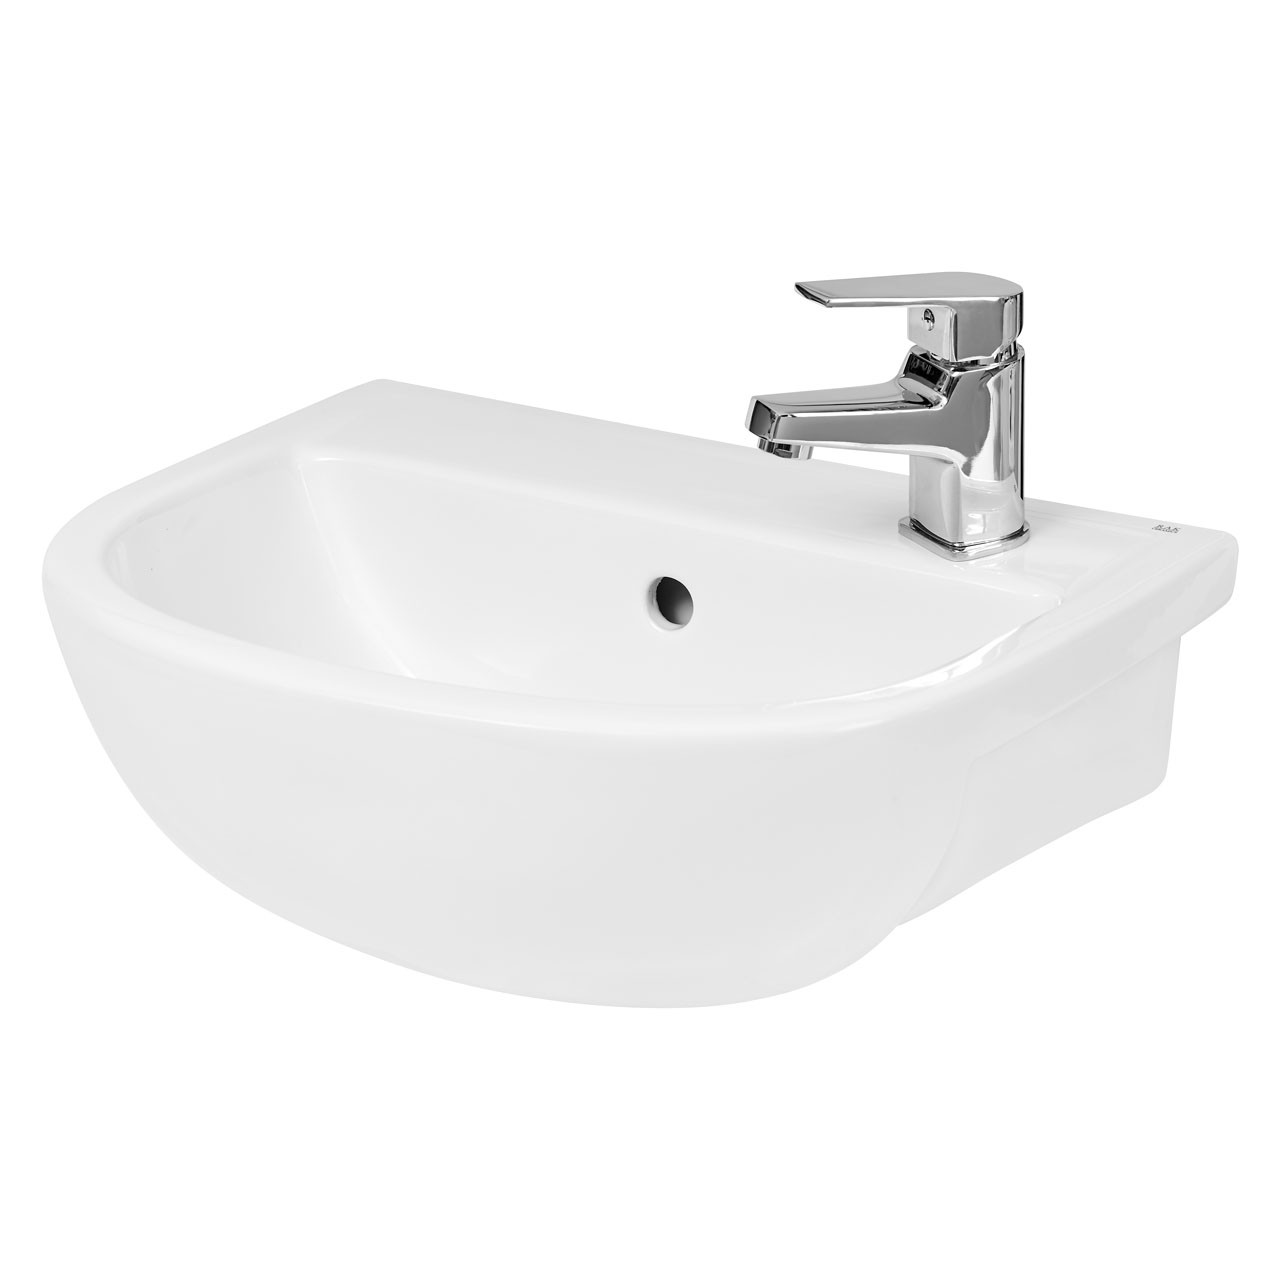 Hudson Reed Curved Compact Semi-Recessed 400mm Basin with 1 Tap Hole - SRB002